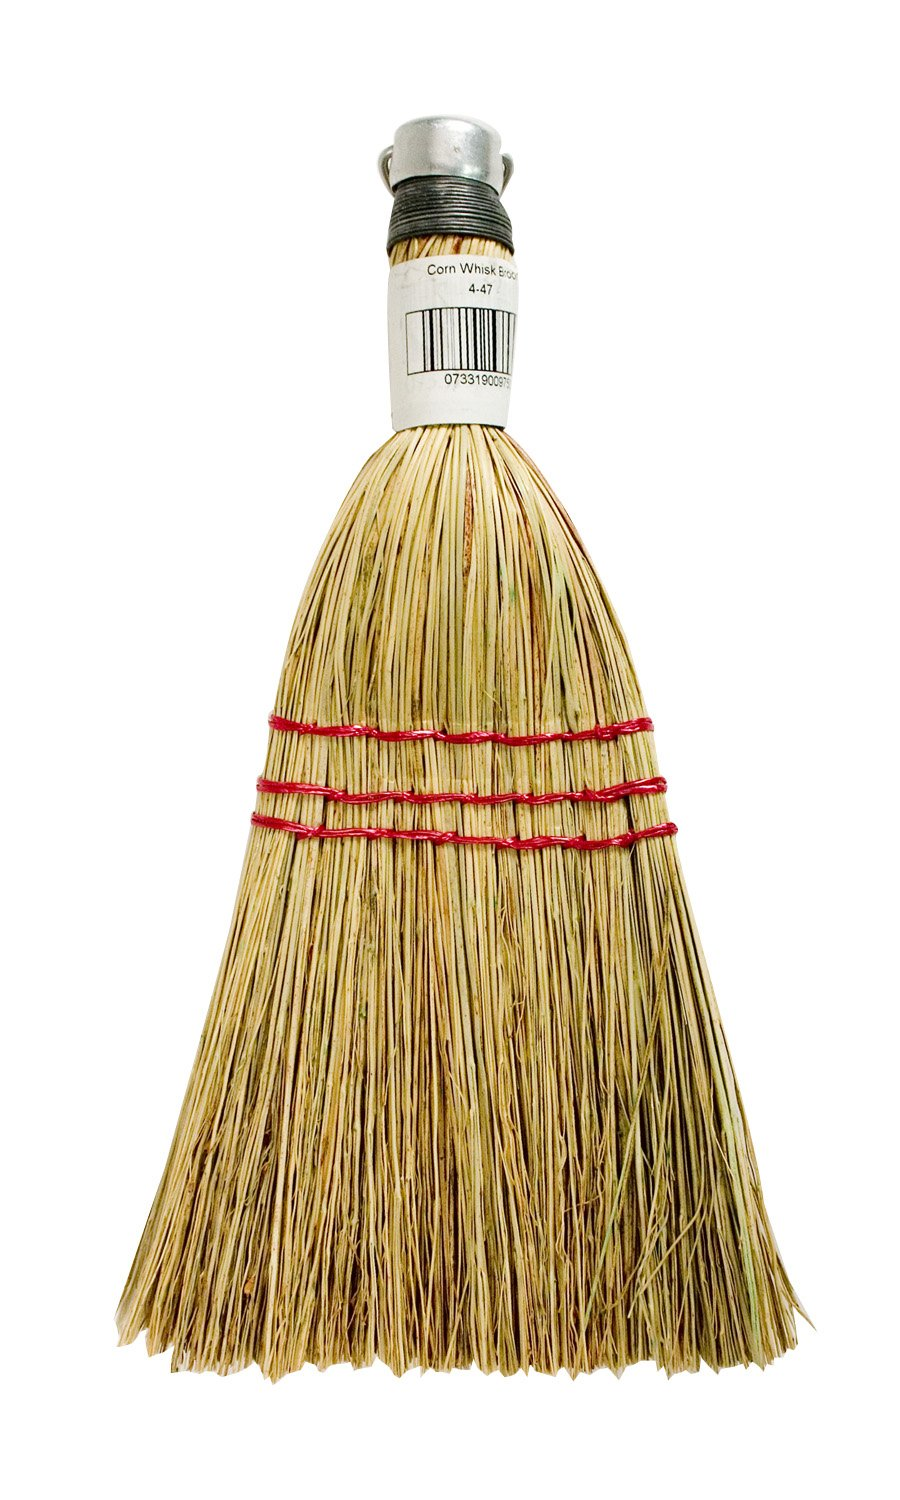 Detailer's Choice 4-47 Corn Whisk Broom Detailer's Choice